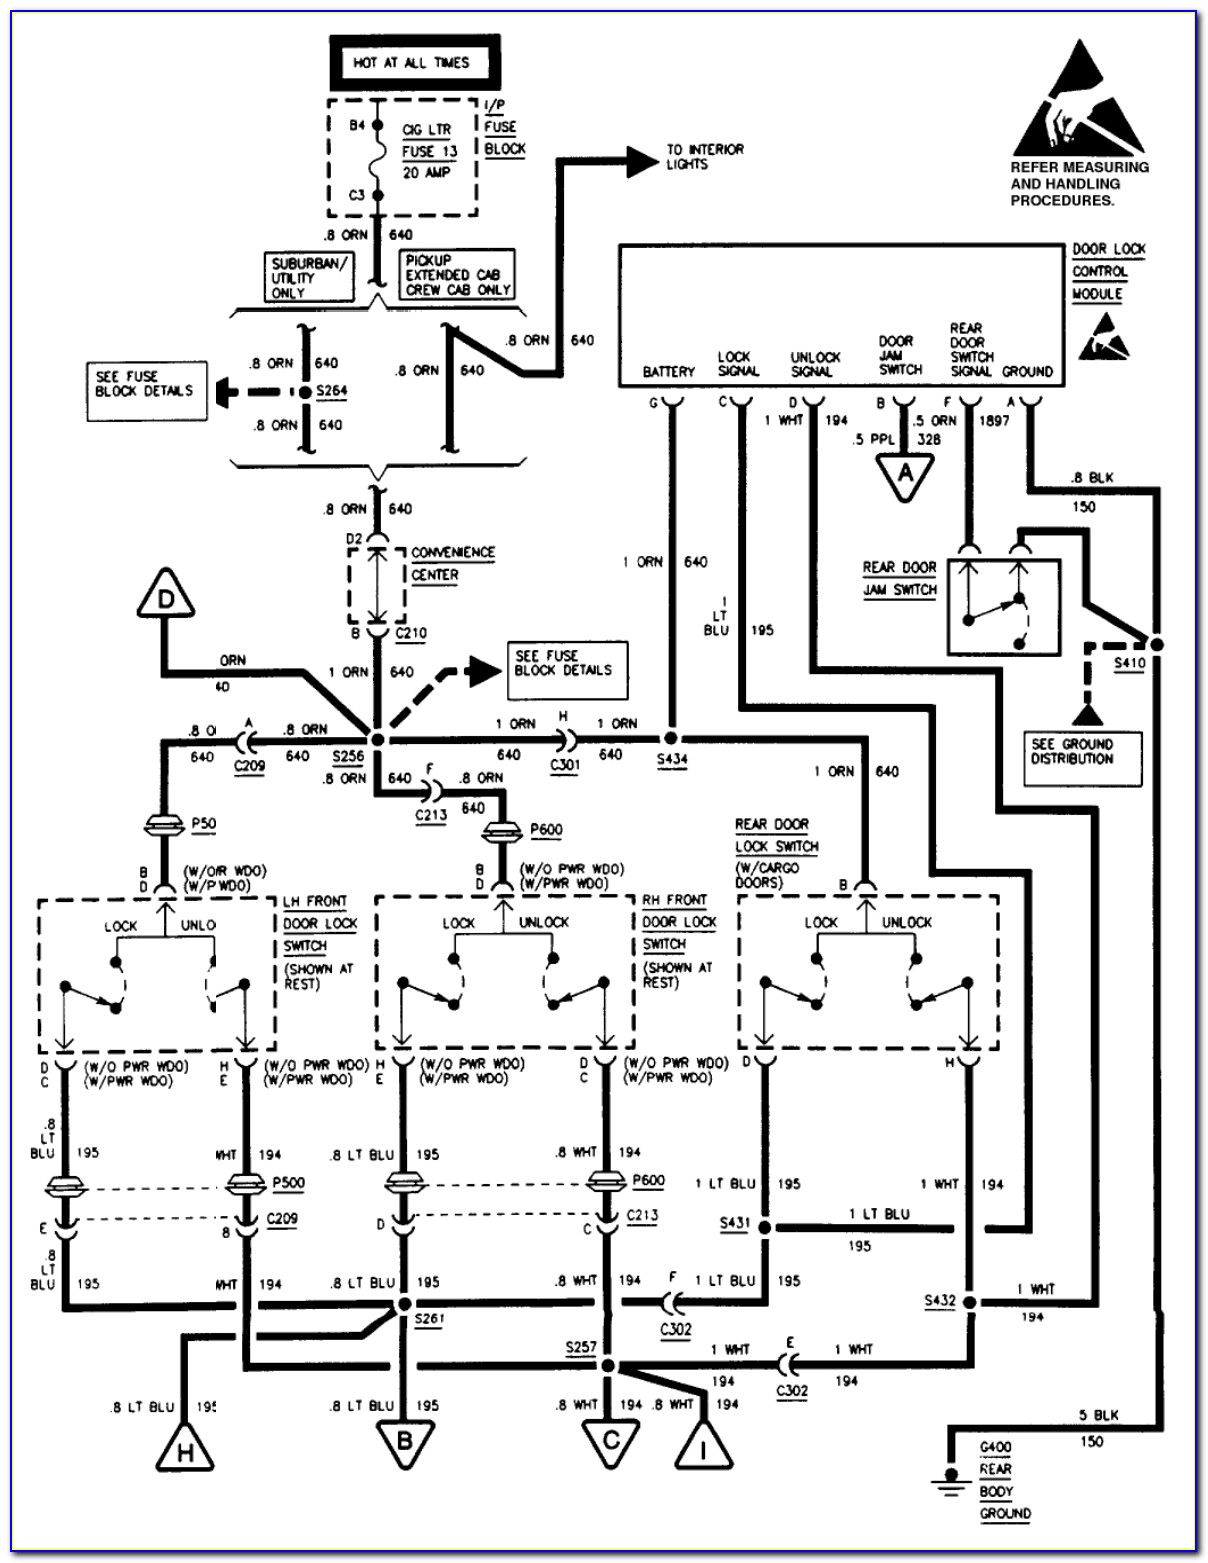 1995 Chevy Blazer Ignition Wiring Diagram